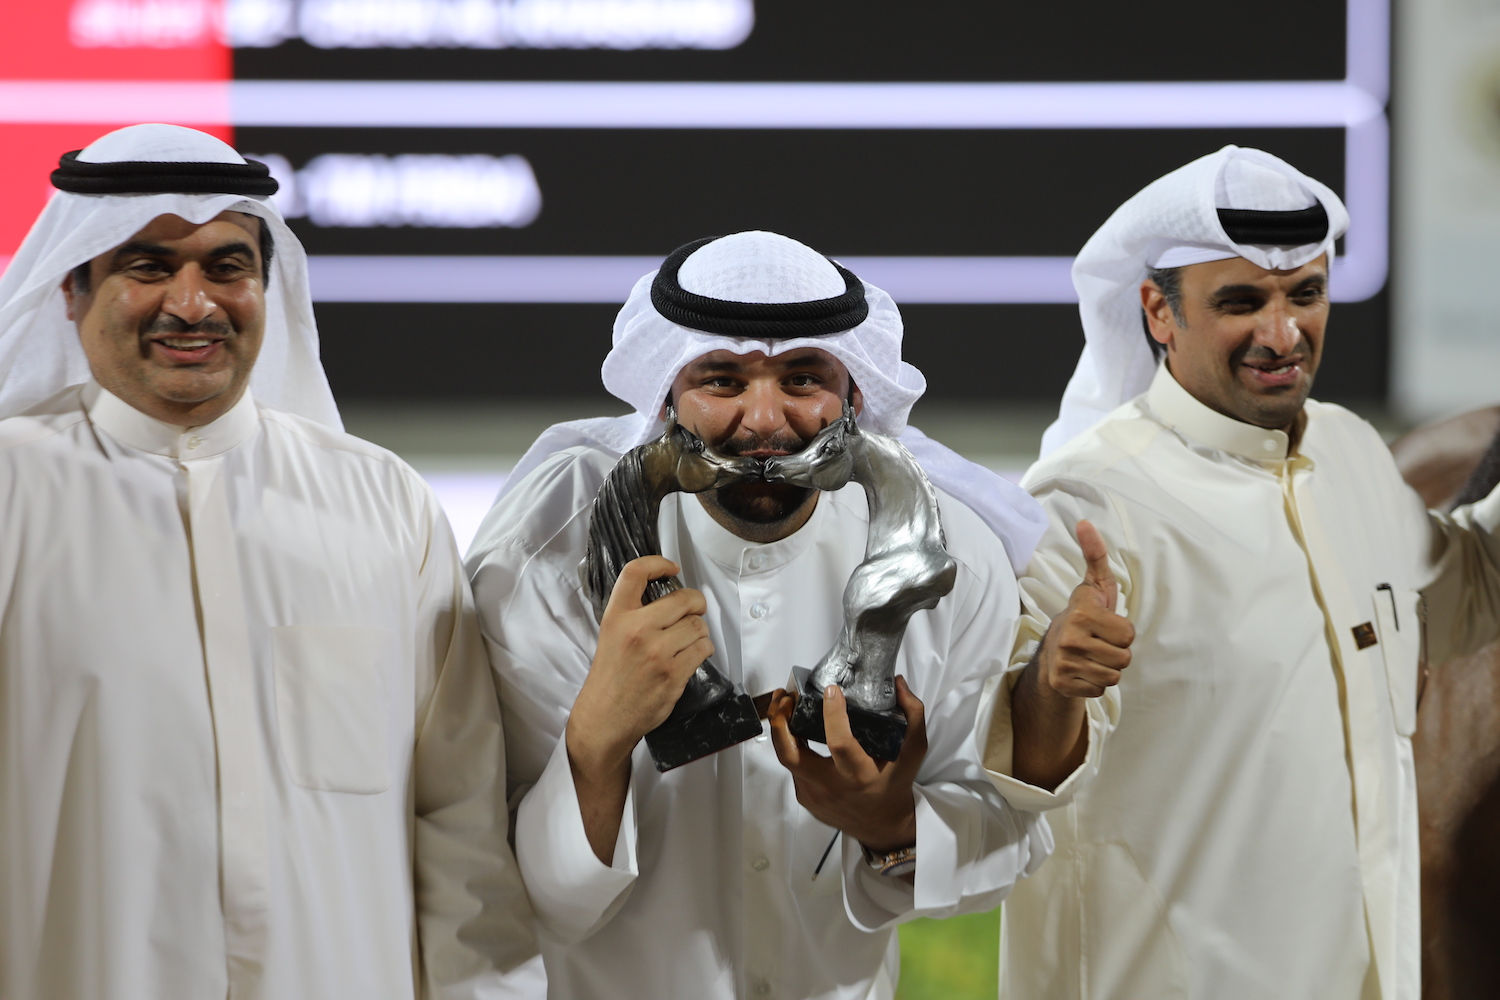 Kuwait Nationals - smiling winners - photo by Michael Steurs